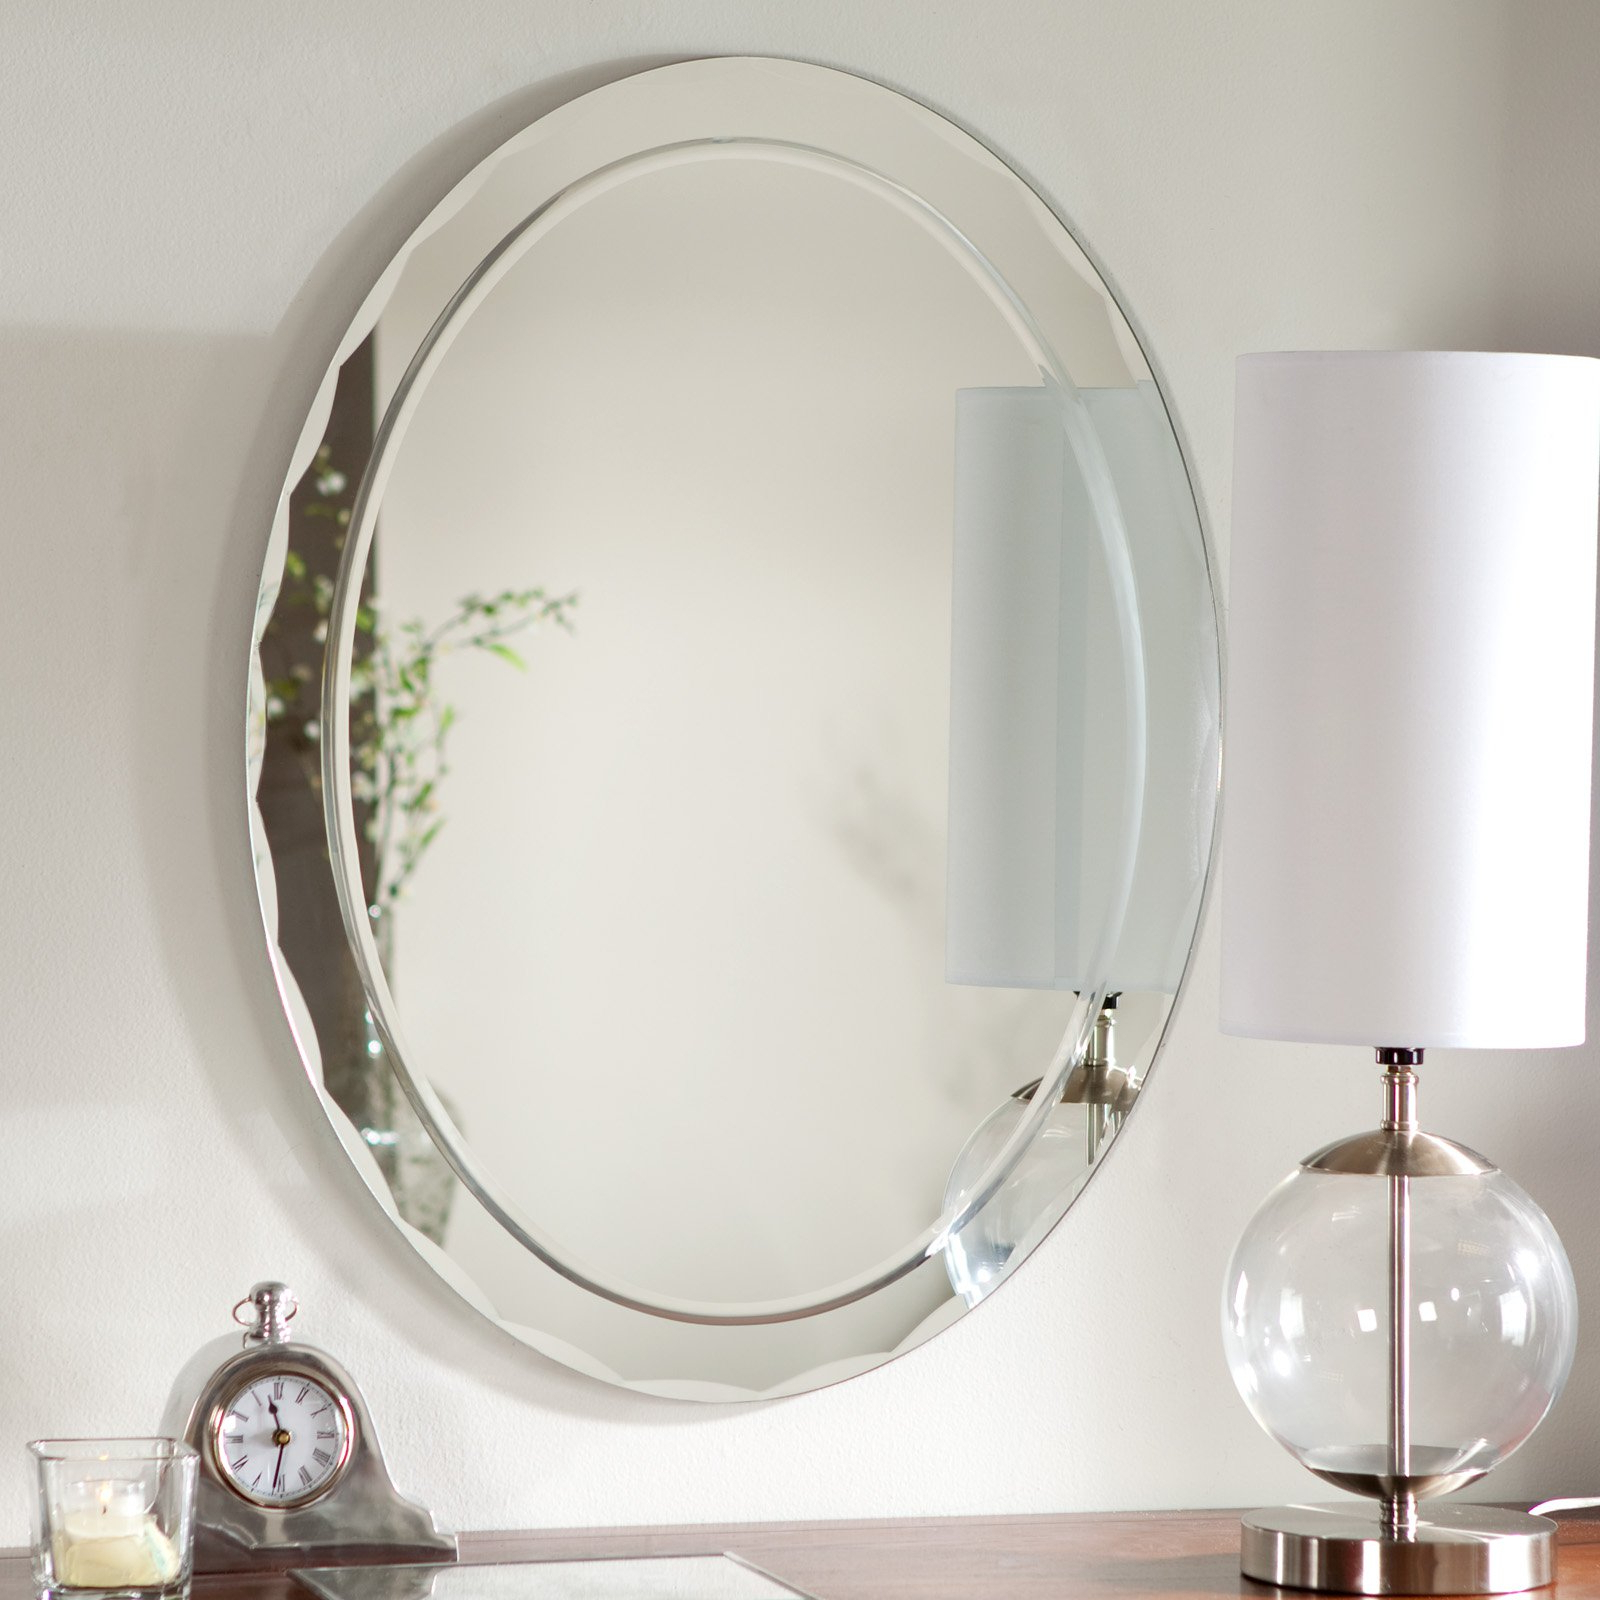 Remarkable Decorative Beveled Wall Mirrors Frame Large Three For Preferred Full Length Oval Wall Mirrors (Gallery 6 of 20)